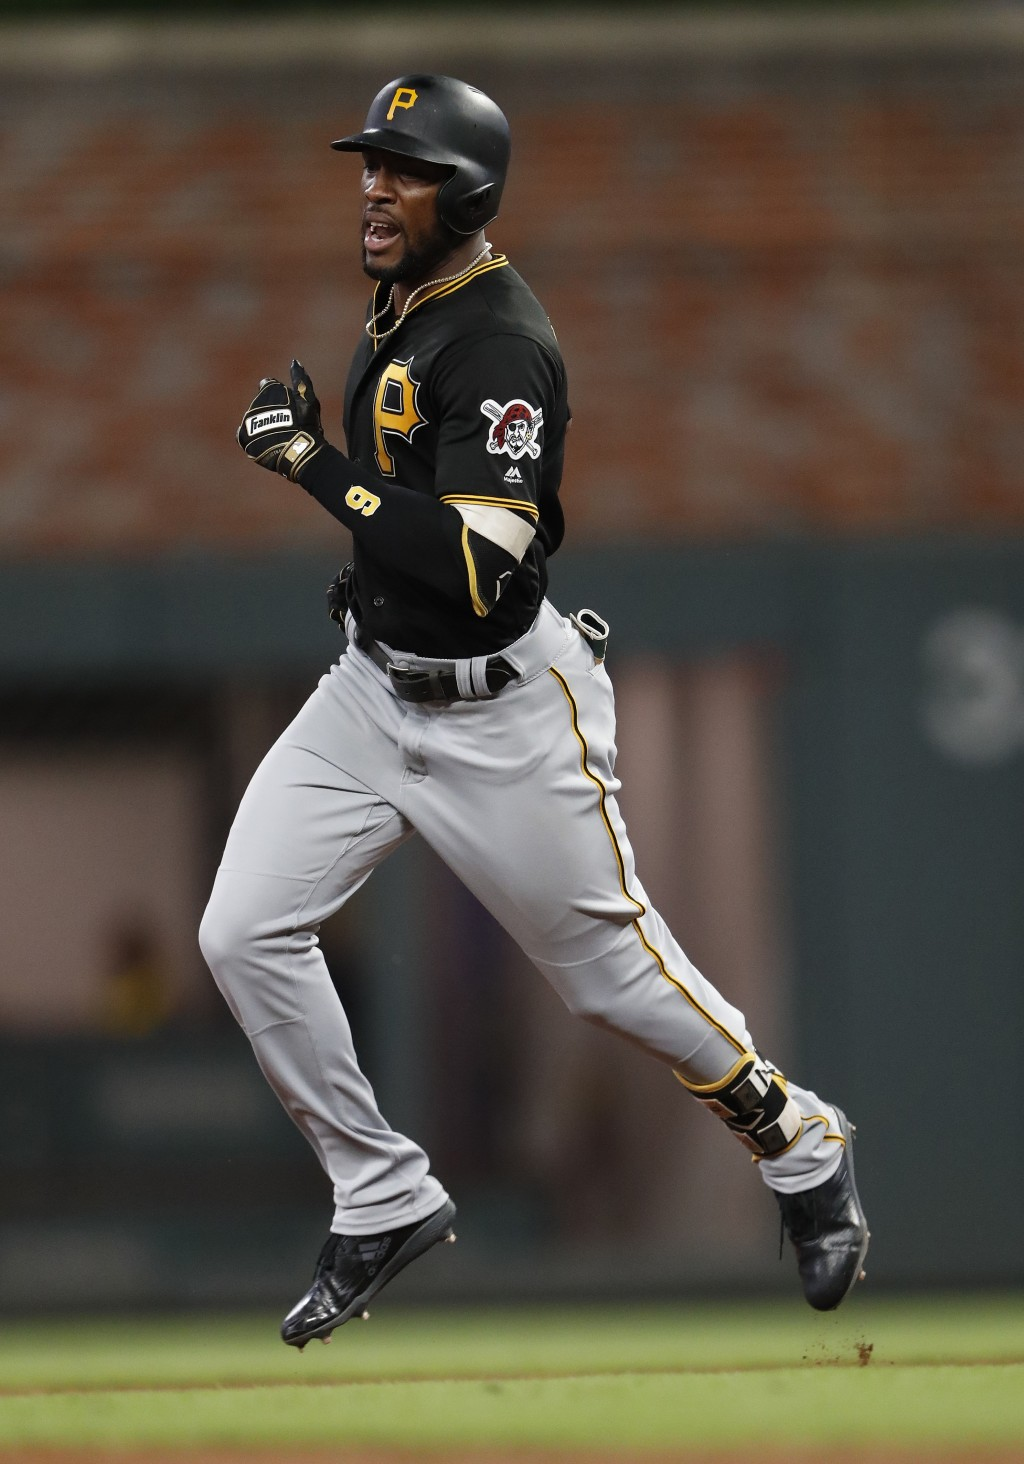 Pittsburgh Pirates' Starling Marte run the bases after hitting a solo home run in the fifth inning of the team's baseball game the Atlanta Braves on W